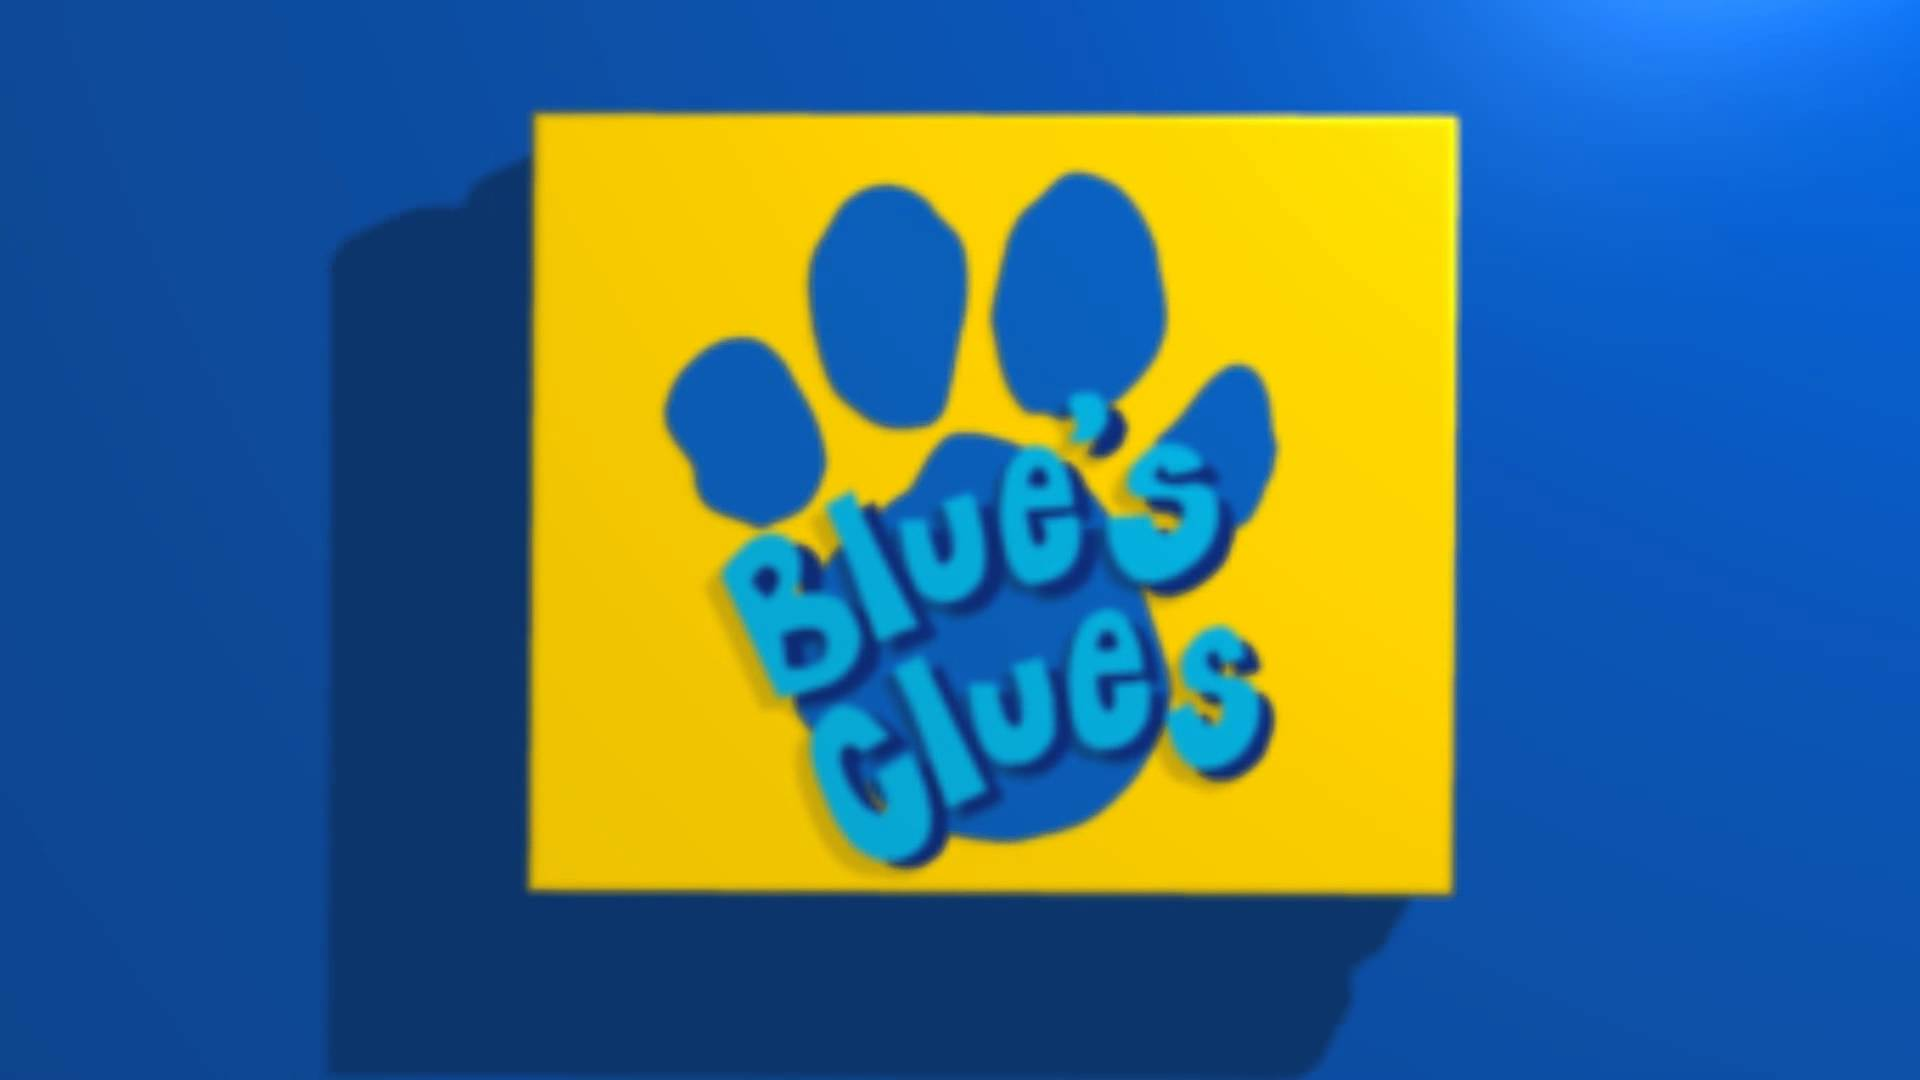 Best 52+ Blues Clues Wallpaper on HipWallpaper.